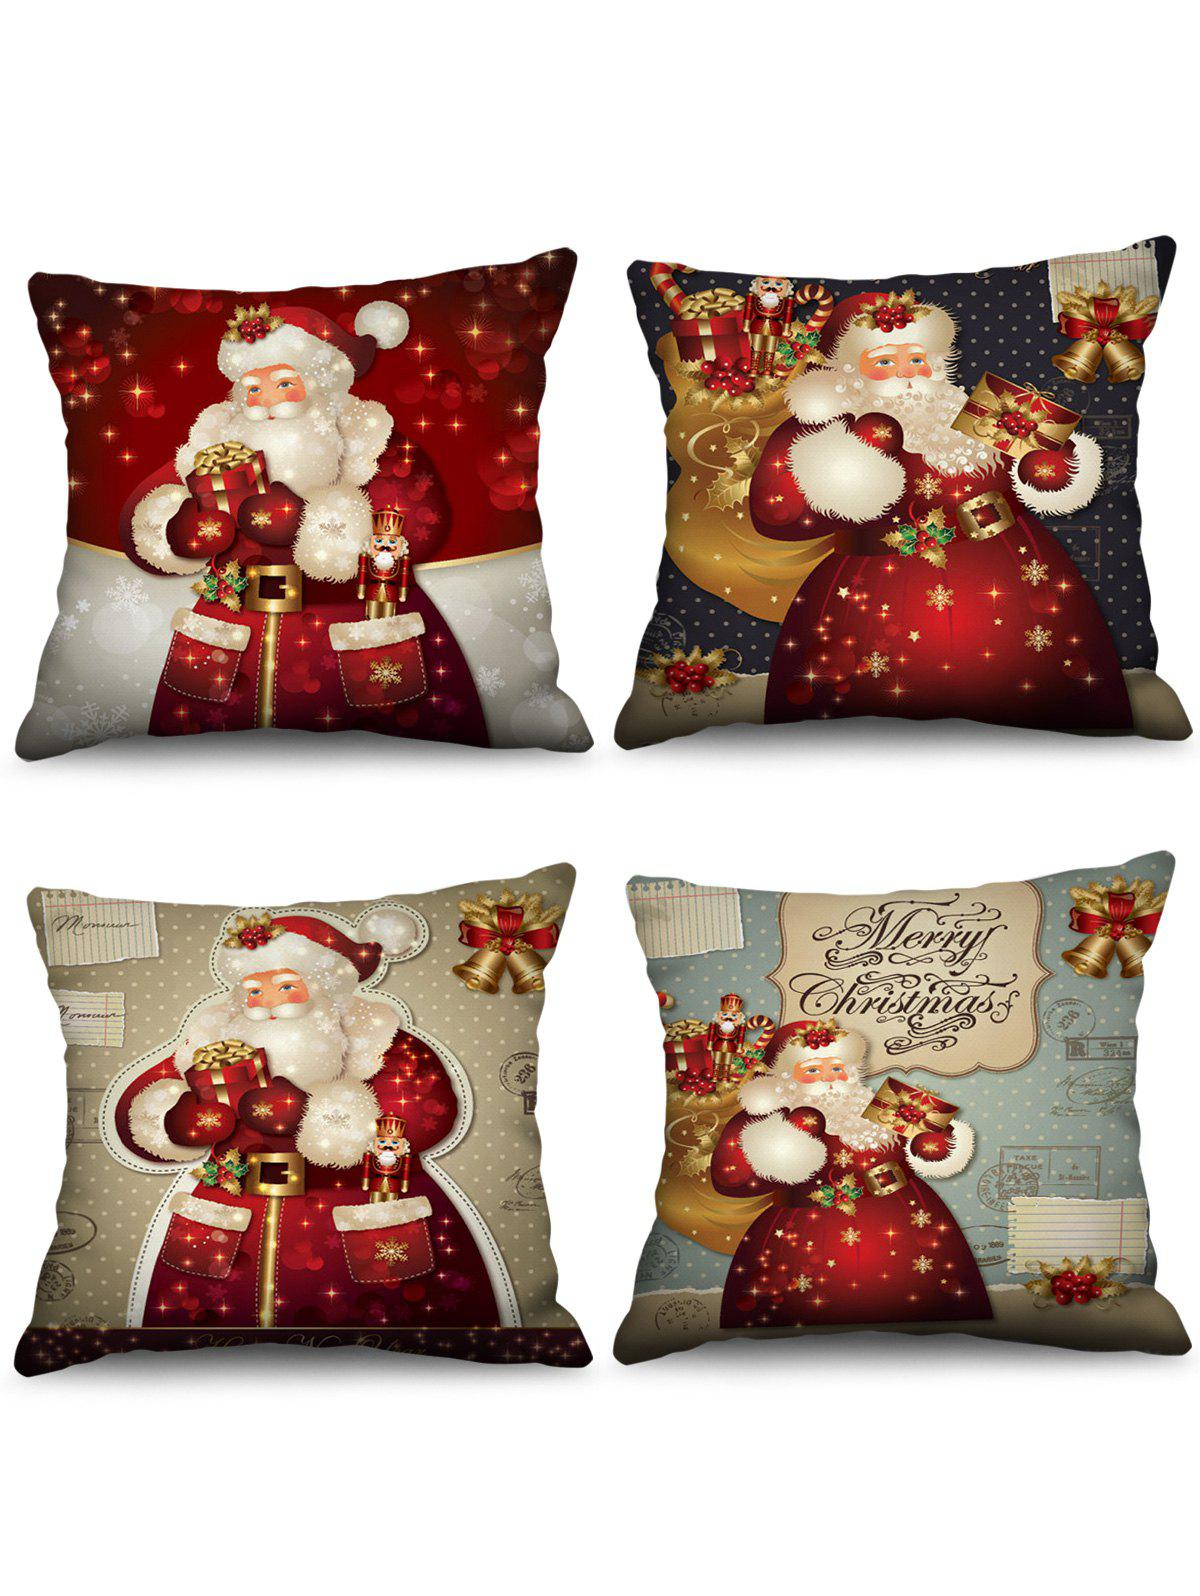 Fancy 4 Pcs Christmas Santa Claus Gifts Print Decorative Pillowcases